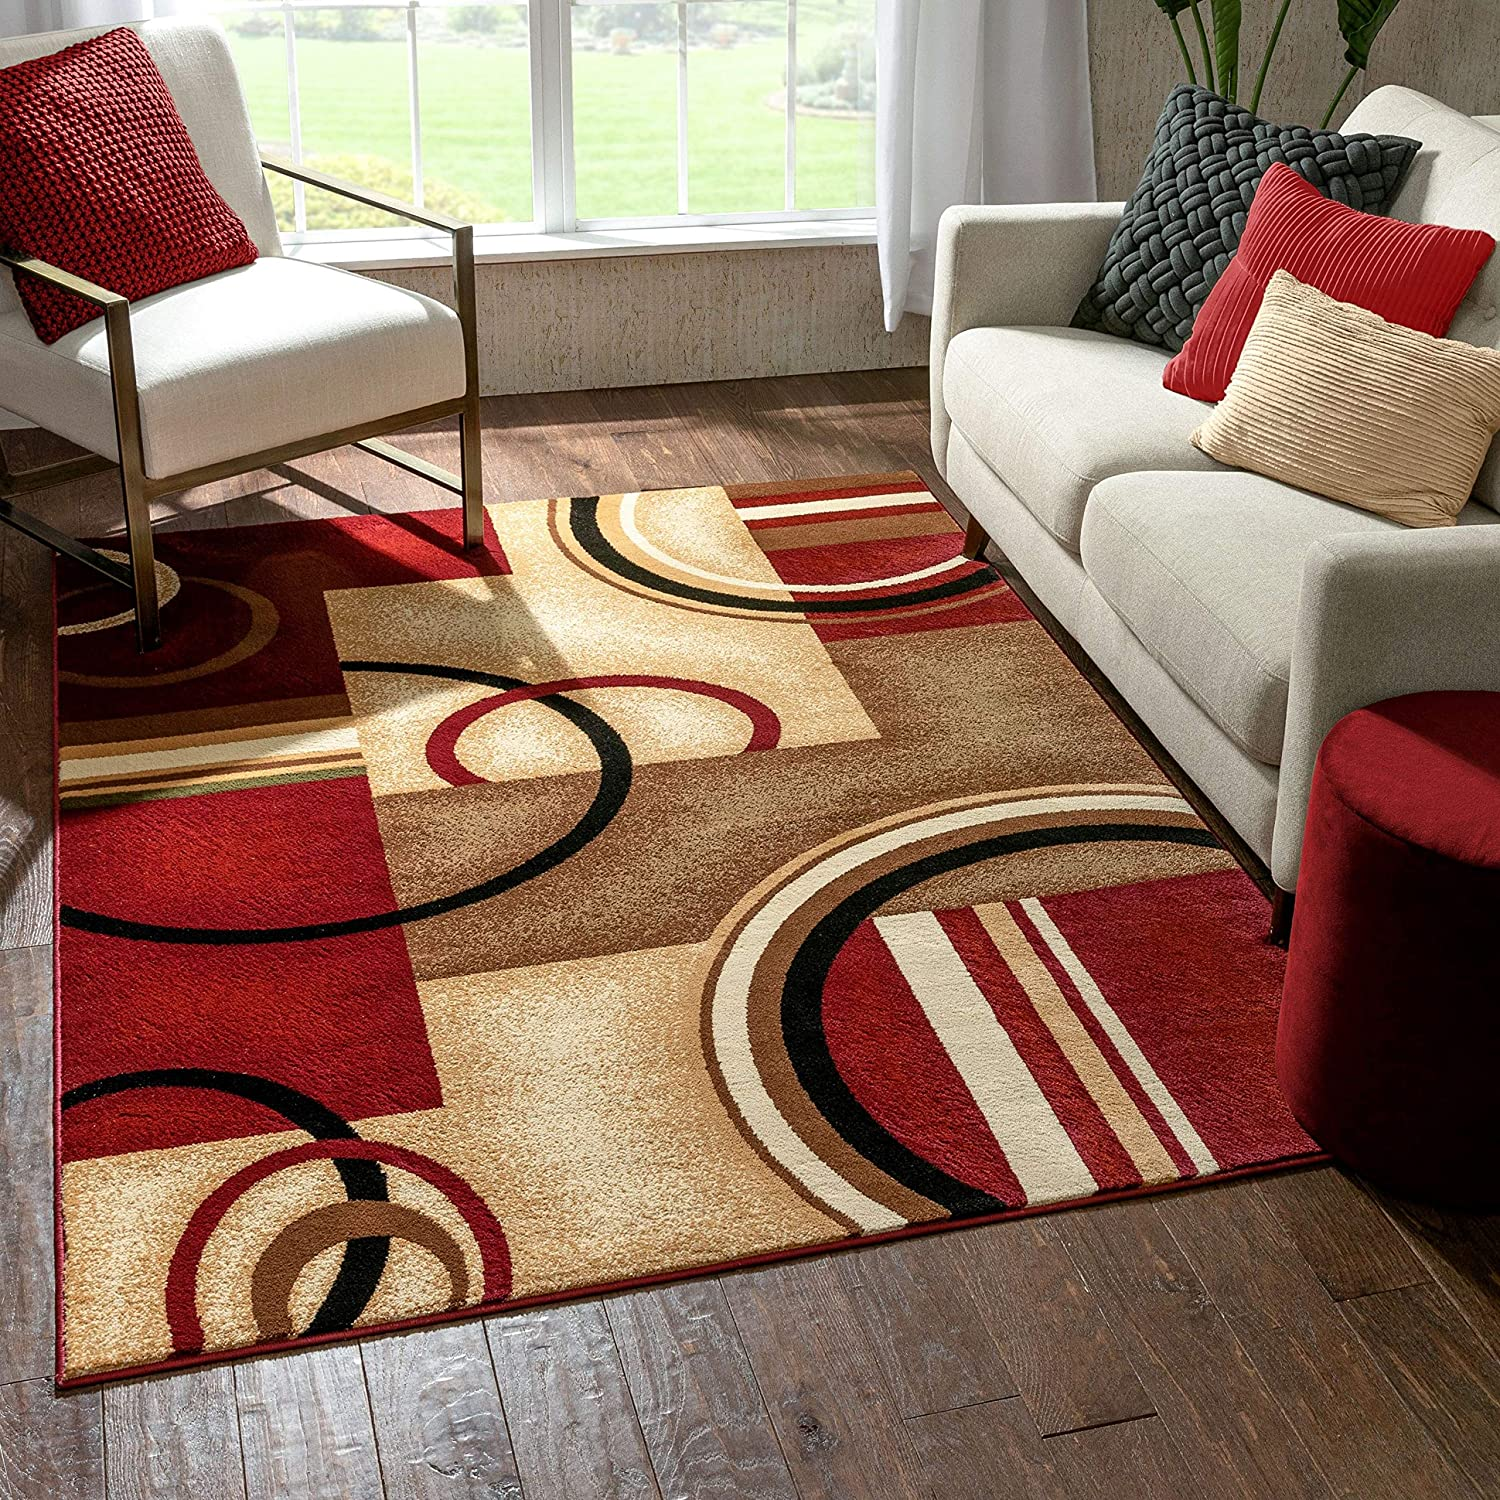 New popularity New Orleans Mall Well Woven Barclay Arcs Shapes Red Modern 9 Geometric Area Rug